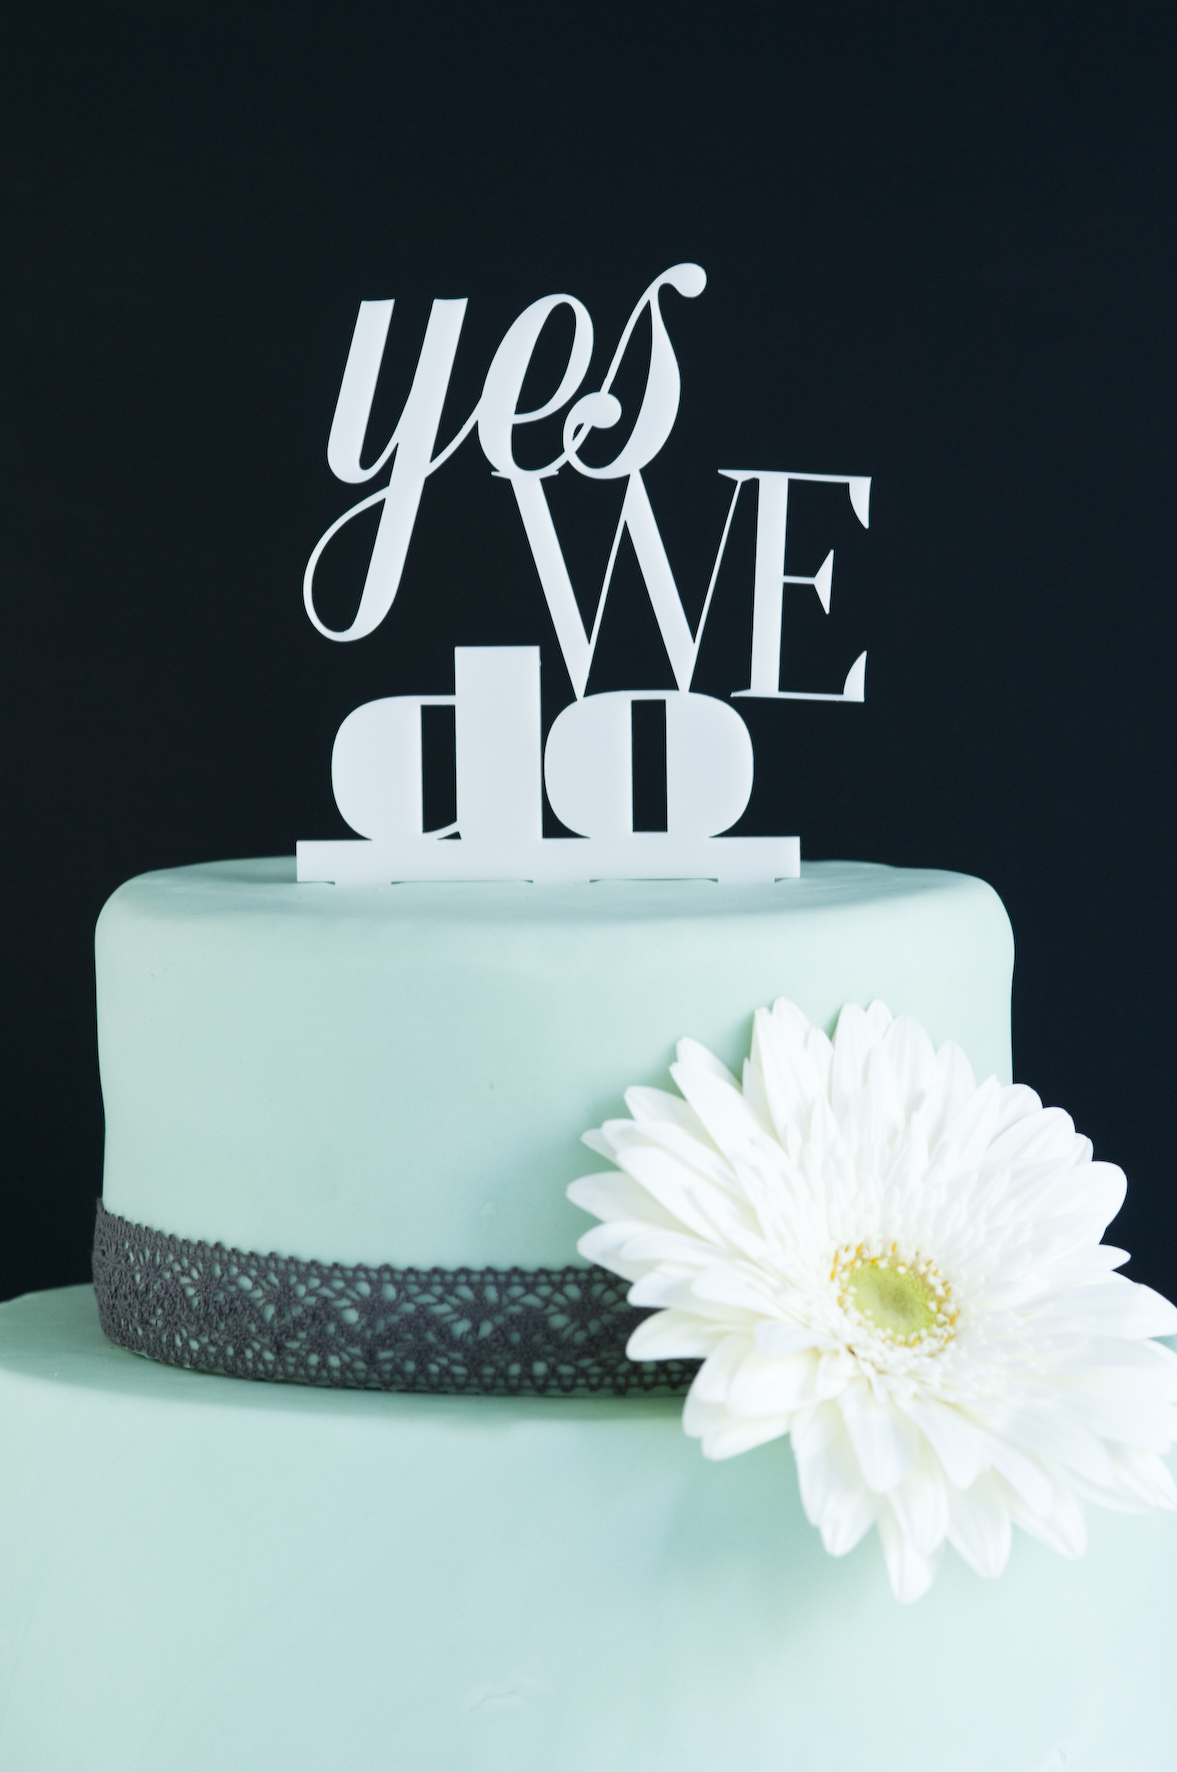 """yes we do"" Hartplastik-Caketopper"